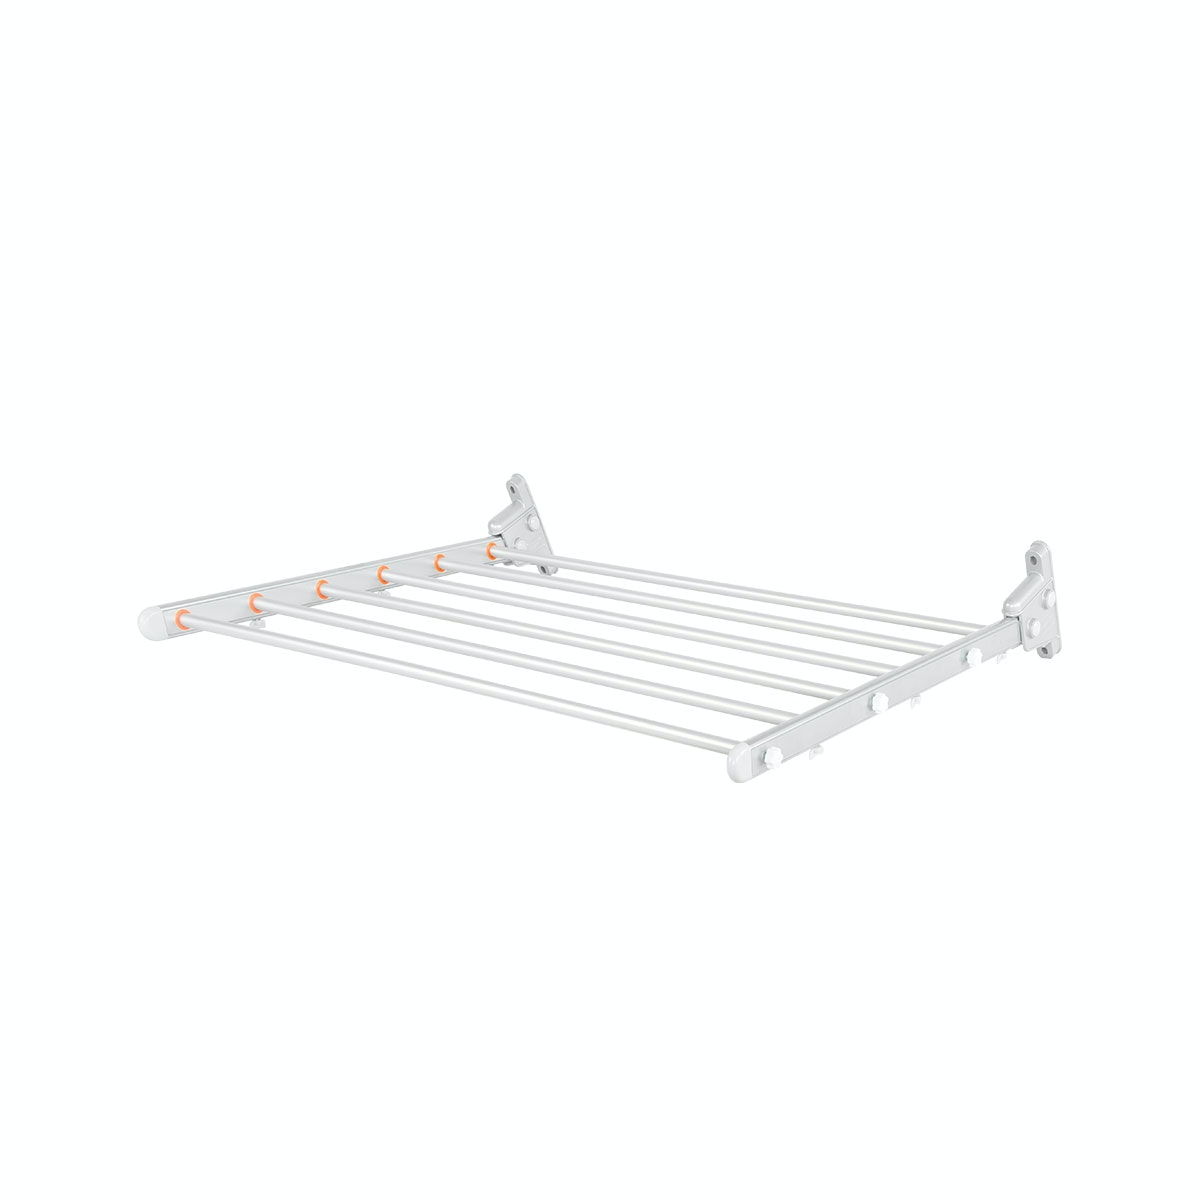 Mami1 Wall Towel Rack M-7146